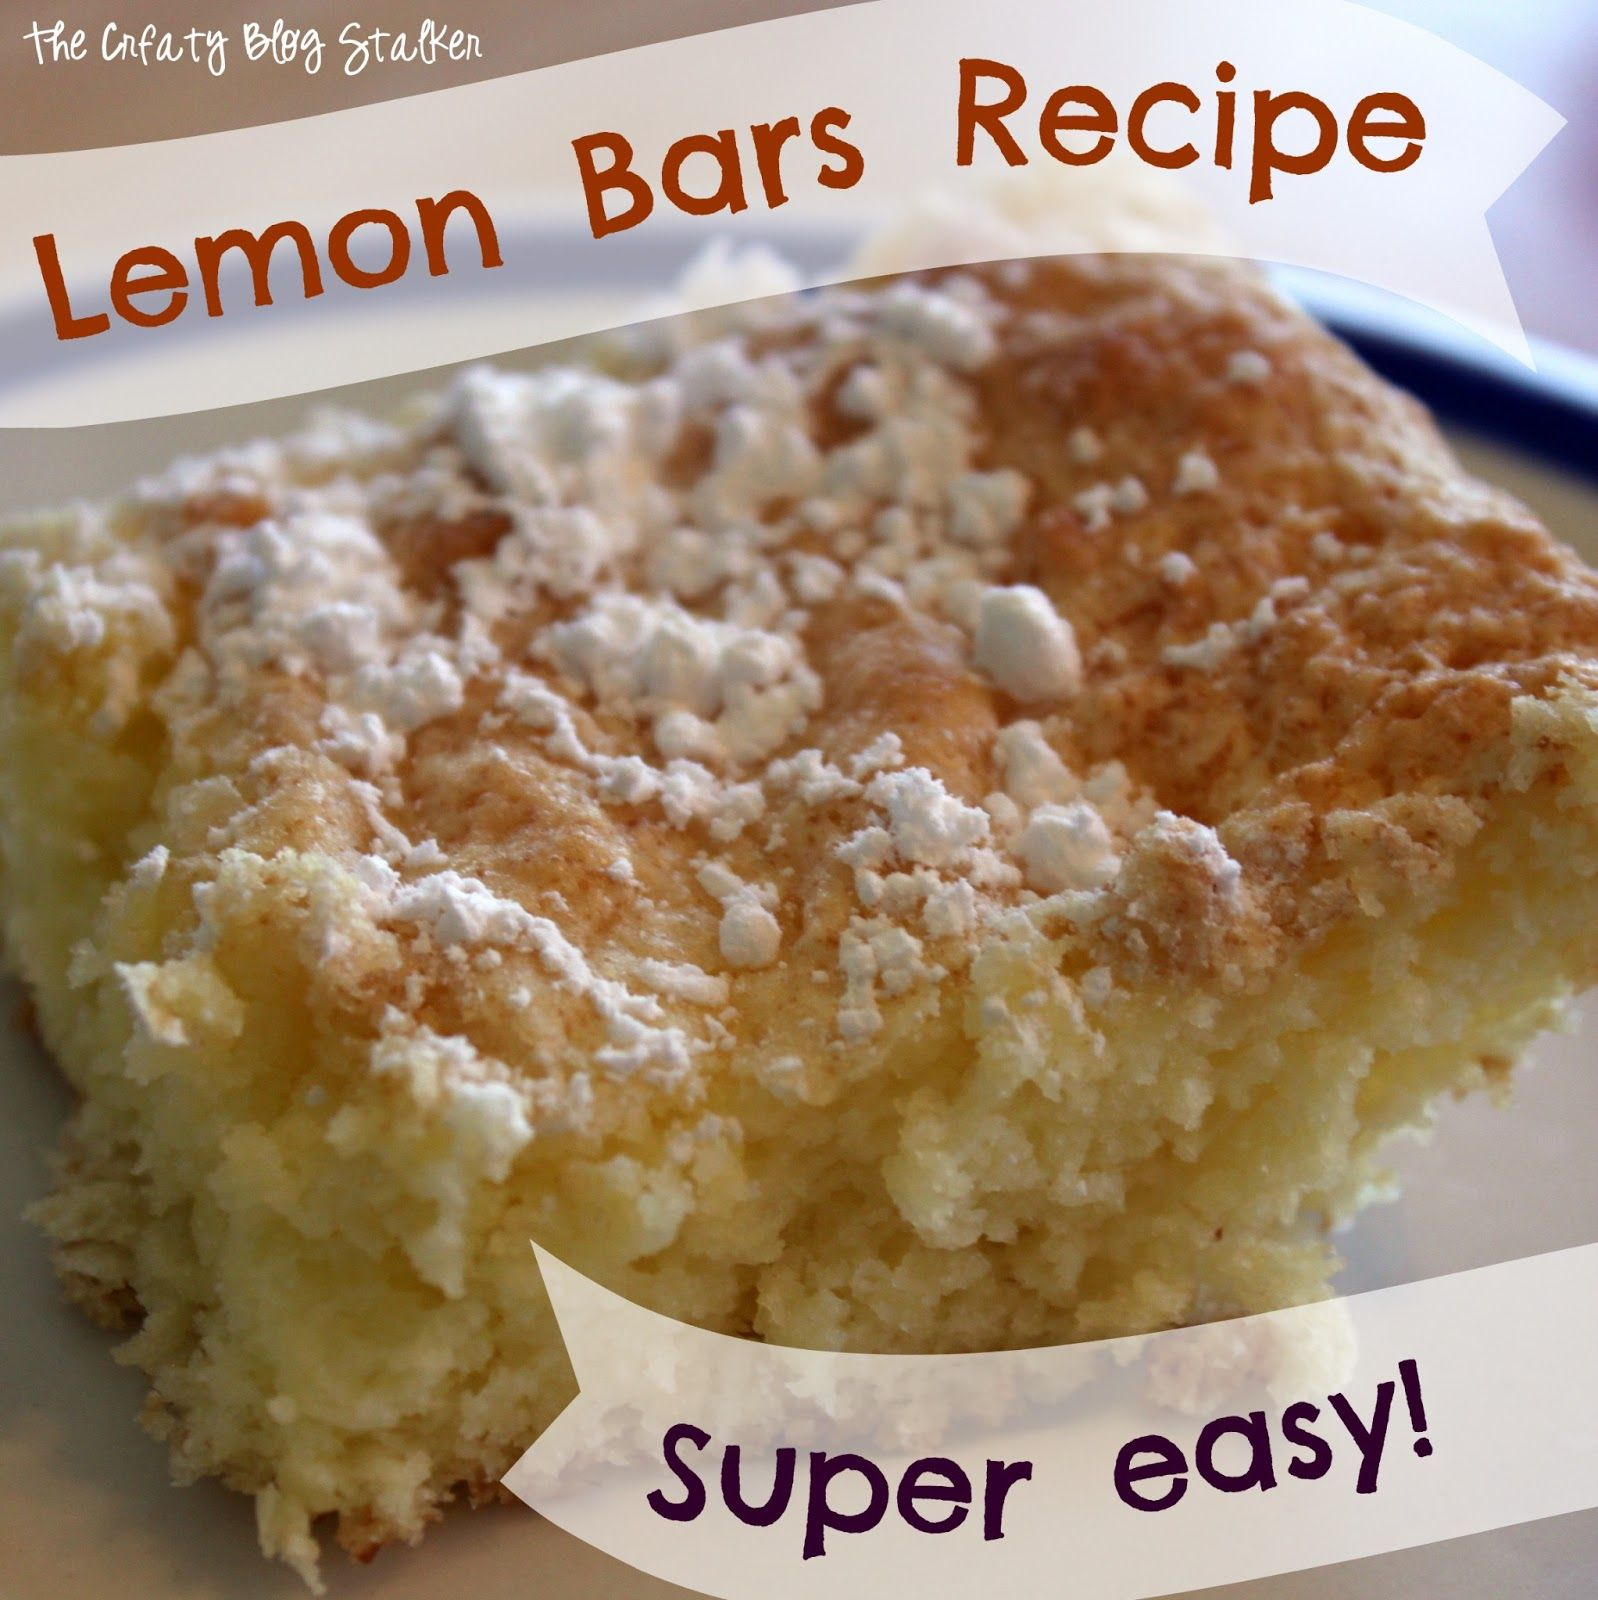 How to make lemon bars easy dessert recipe super easy lemon and super easy lemon bars recipe angelfood cake mix and lemon pie filling only forumfinder Image collections